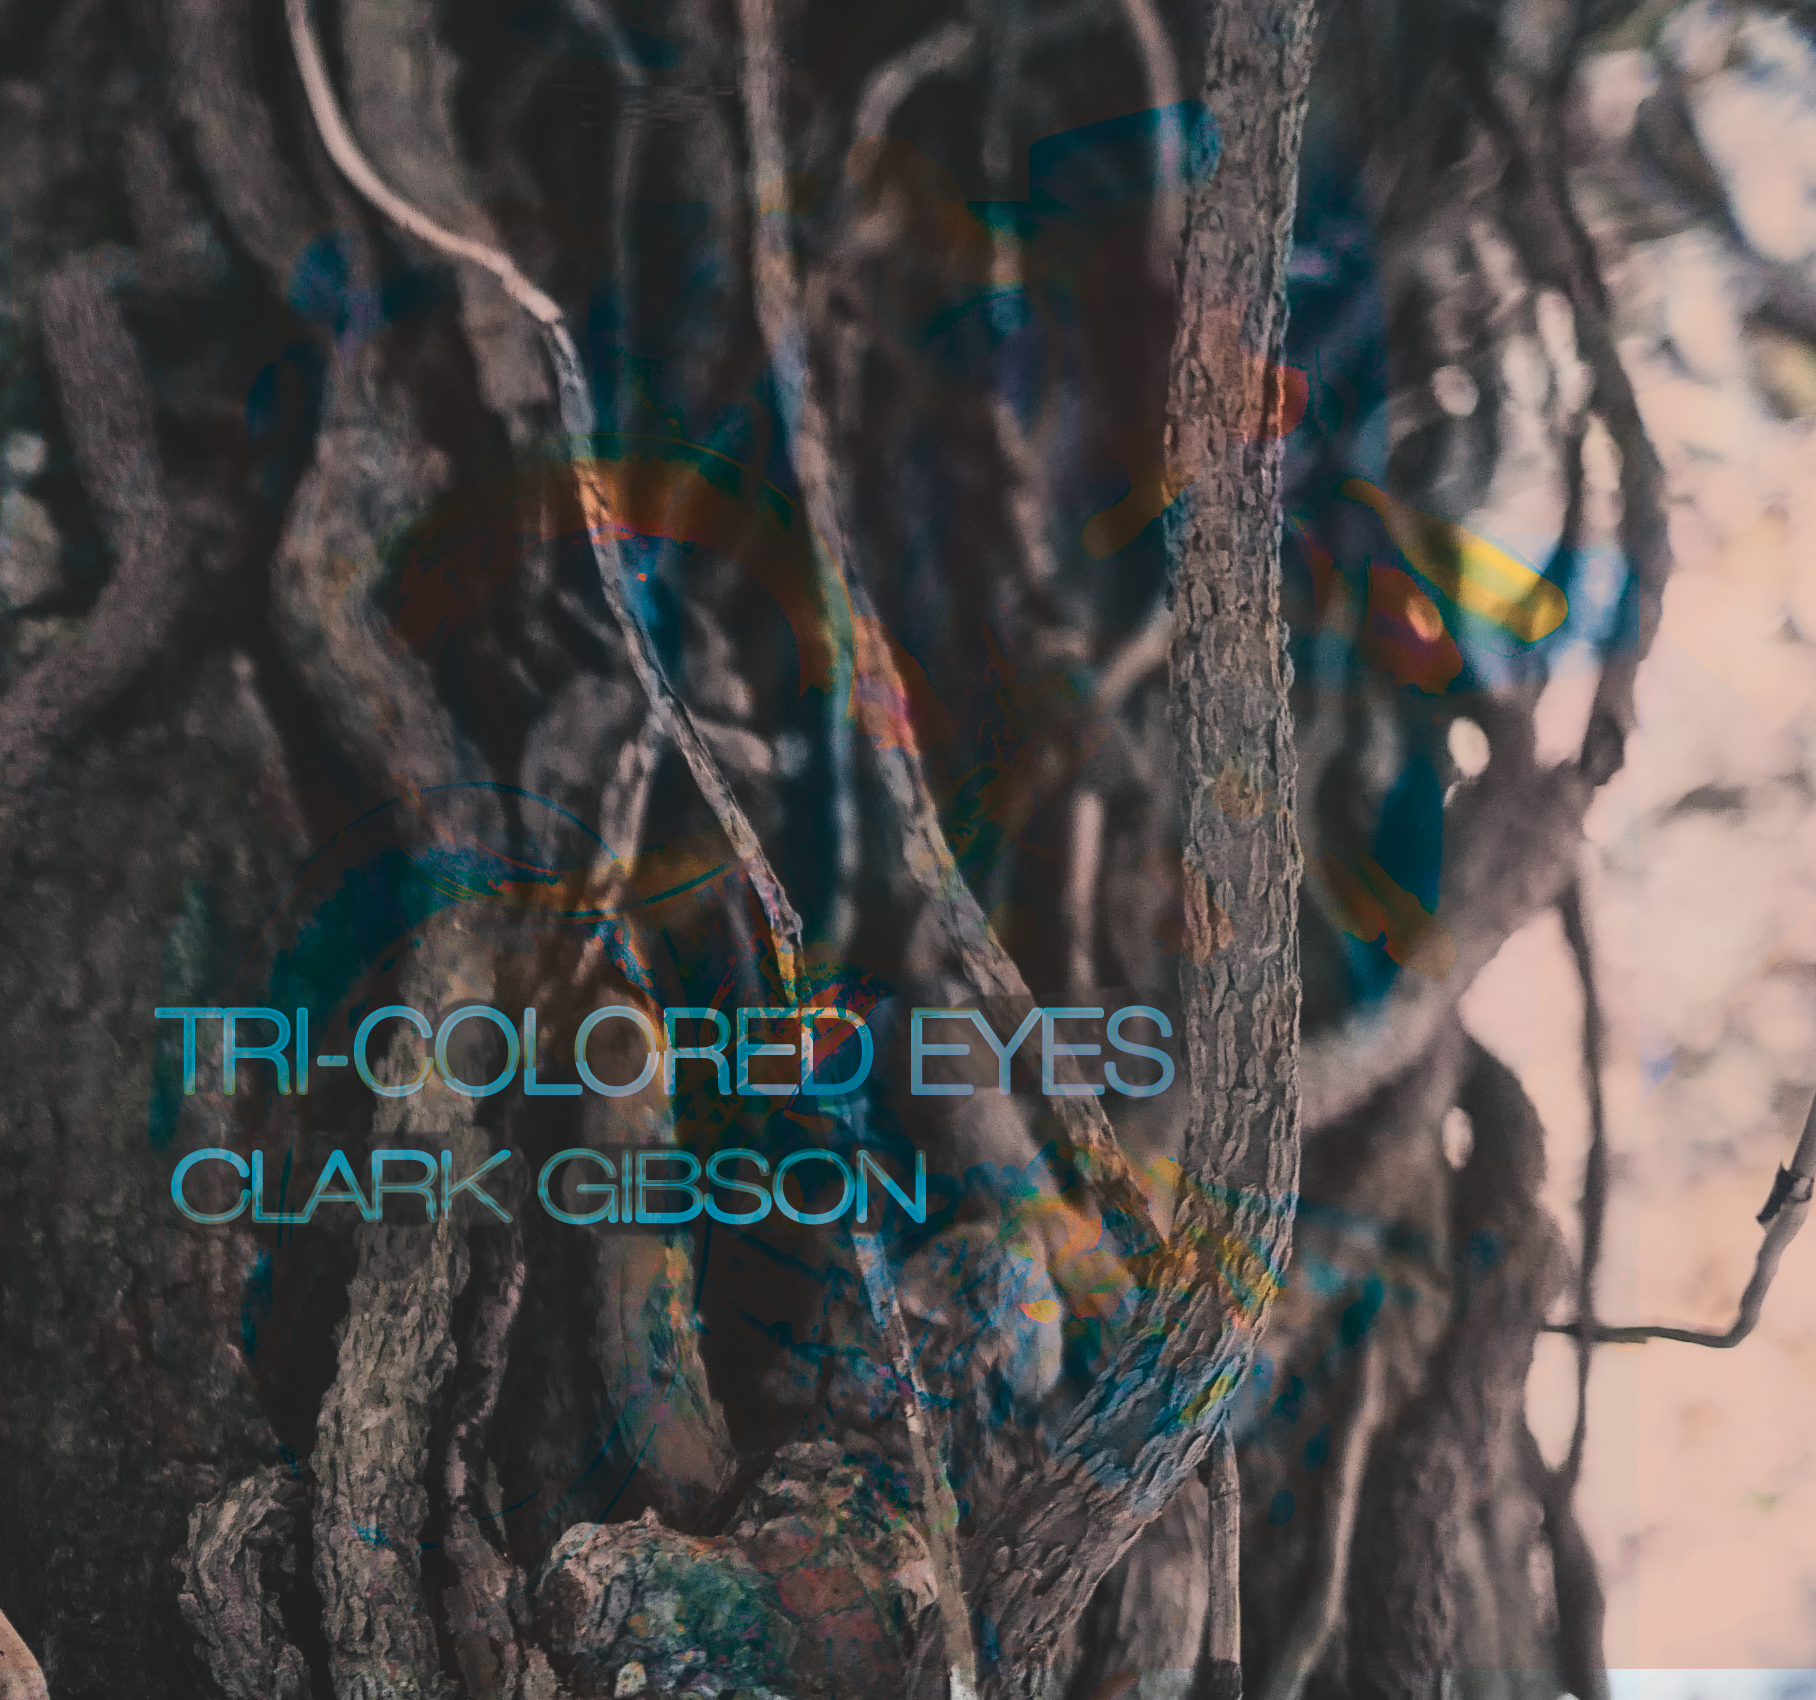 REVIEW: Clark Gibson's 'Tri-Colored Eyes' Reviewed by Making a Scene